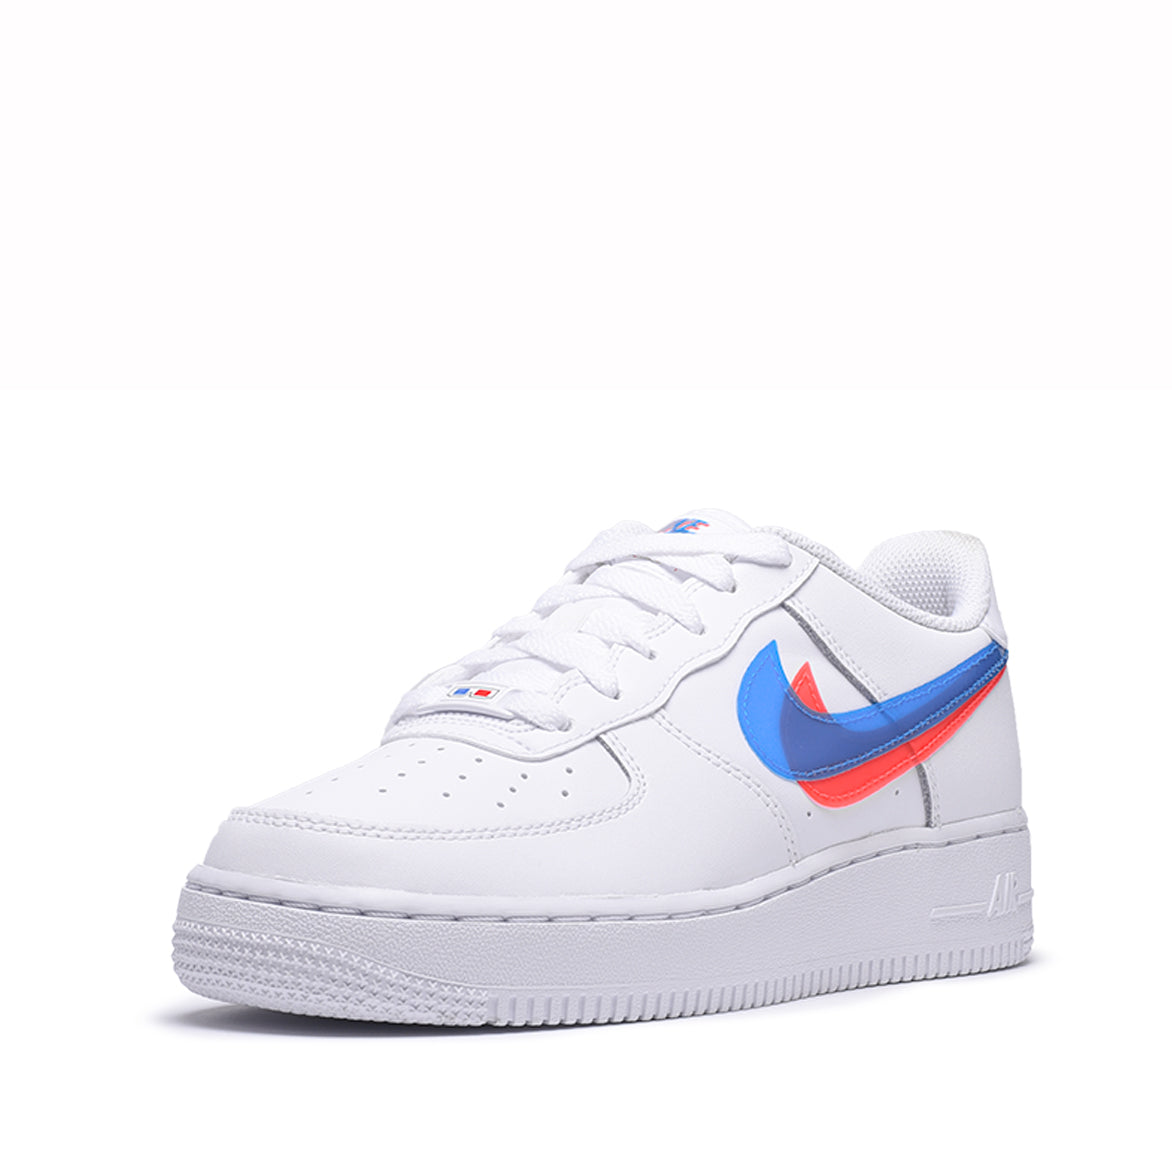 "AIR FORCE 1 LV8 KSA (GS) ""3D GLASSES"""